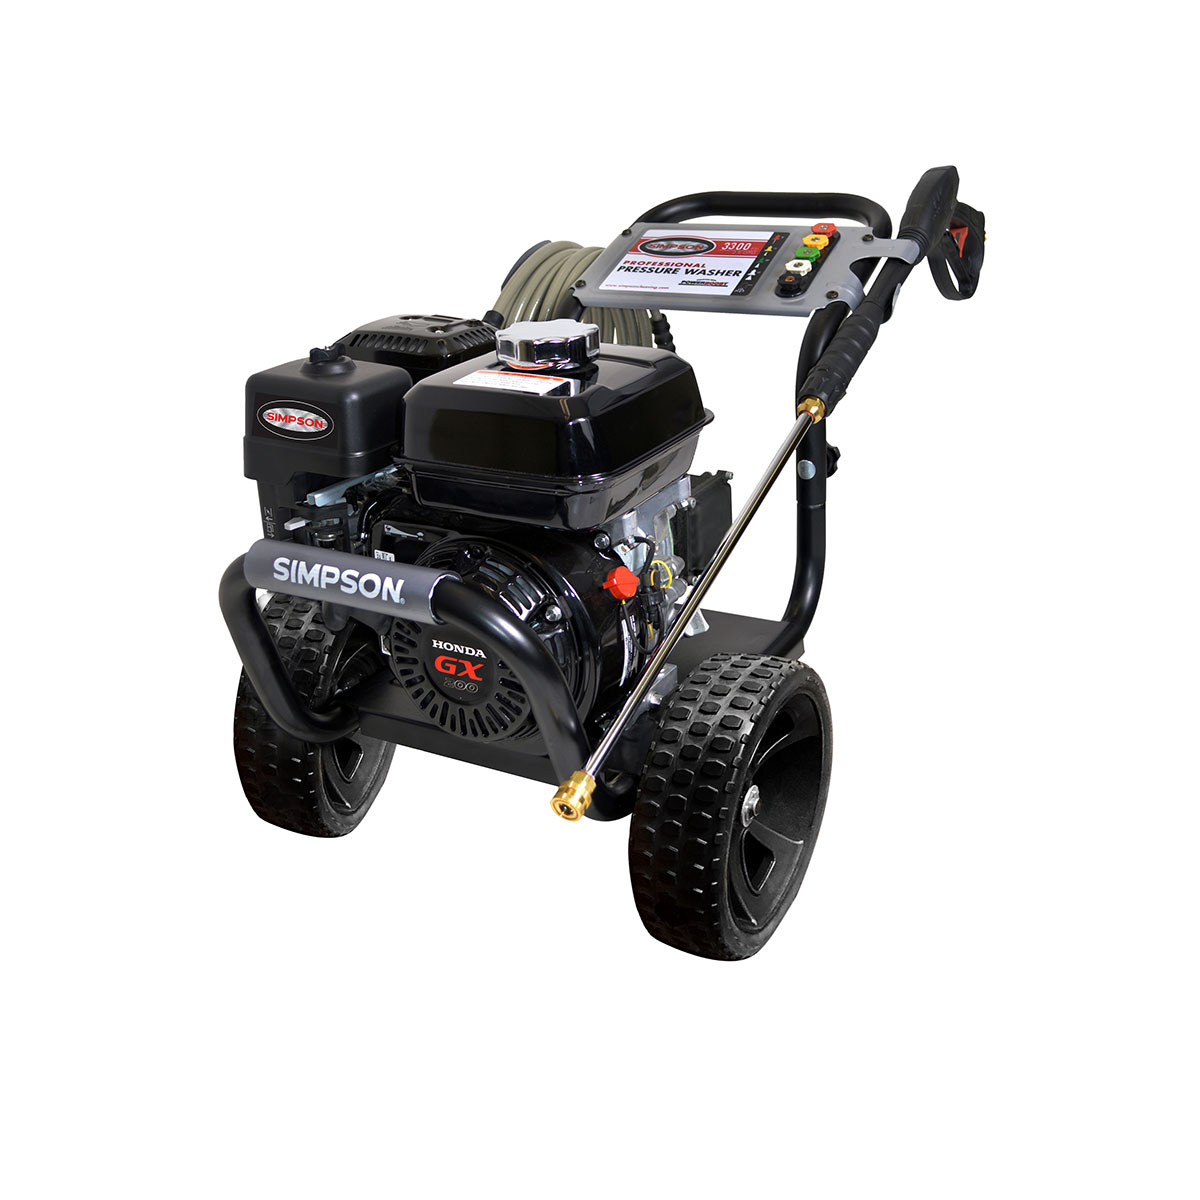 3200 PSI Powershot Series - Commercial Direct Drive Pressure Washer with a Honda GX200 engine and a 25' hose - PS3228-S